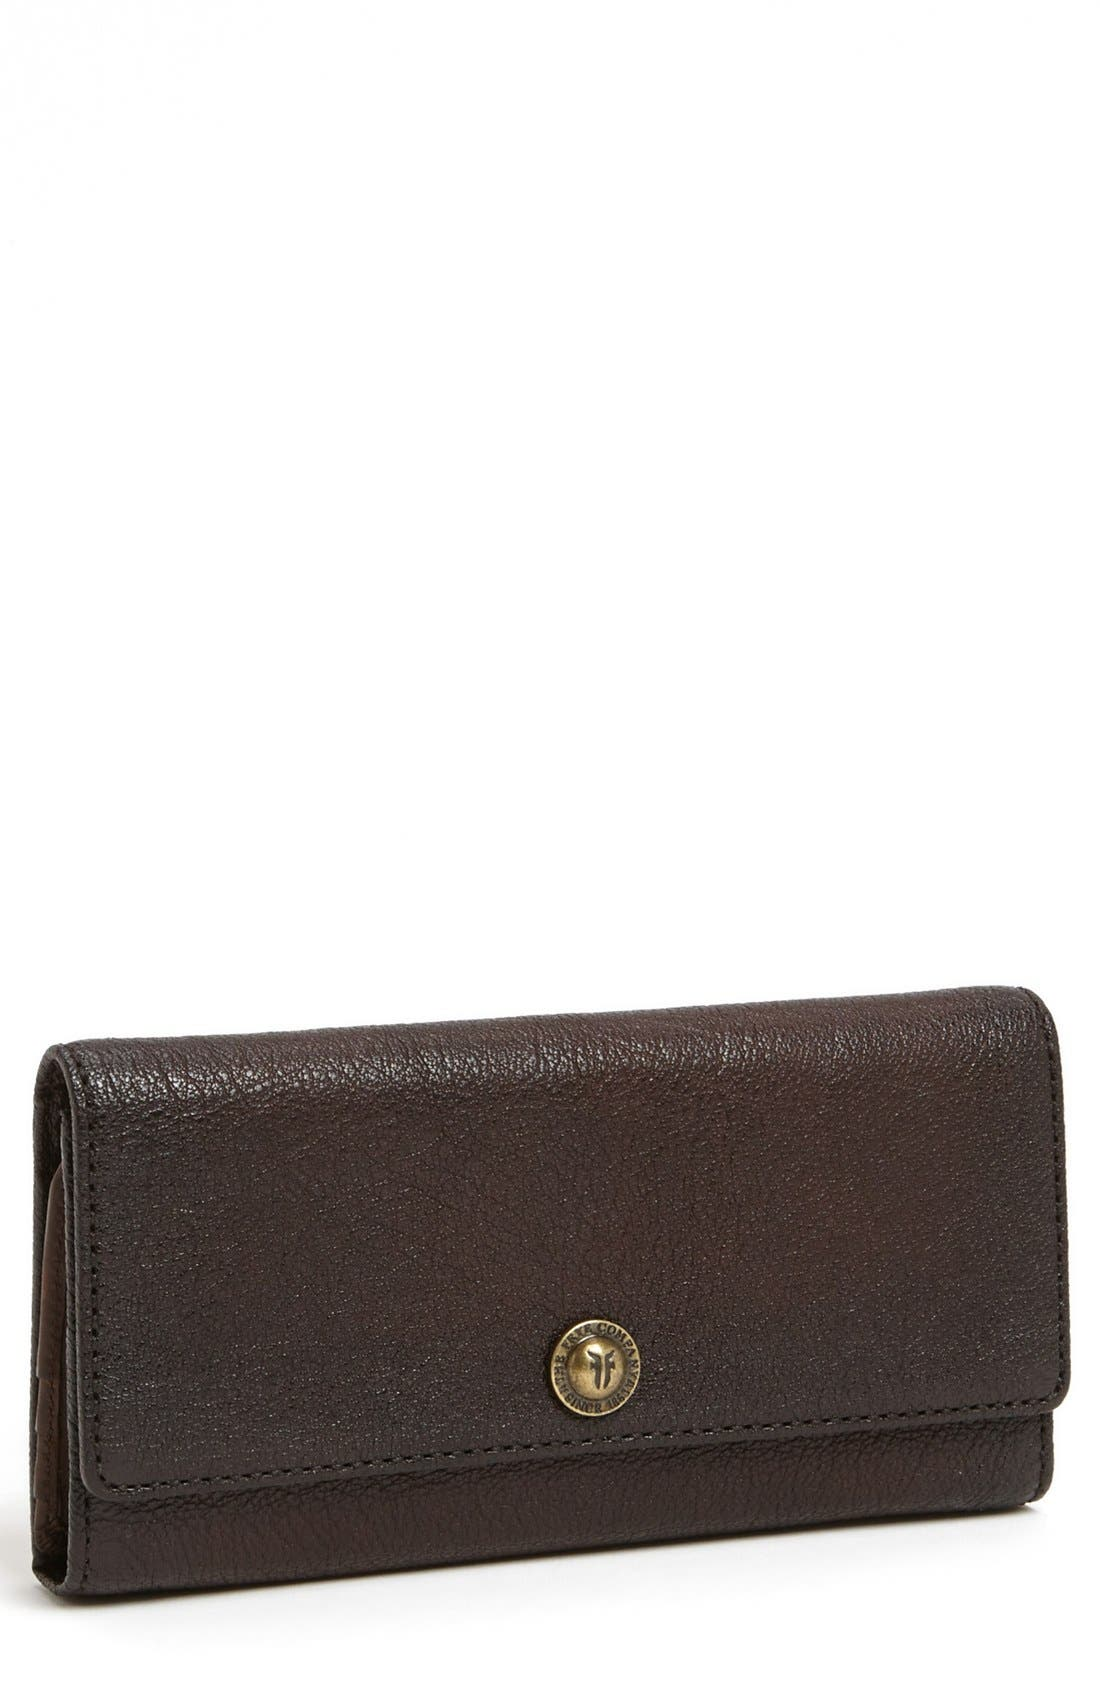 Alternate Image 1 Selected - Frye 'Melissa' Leather Wallet